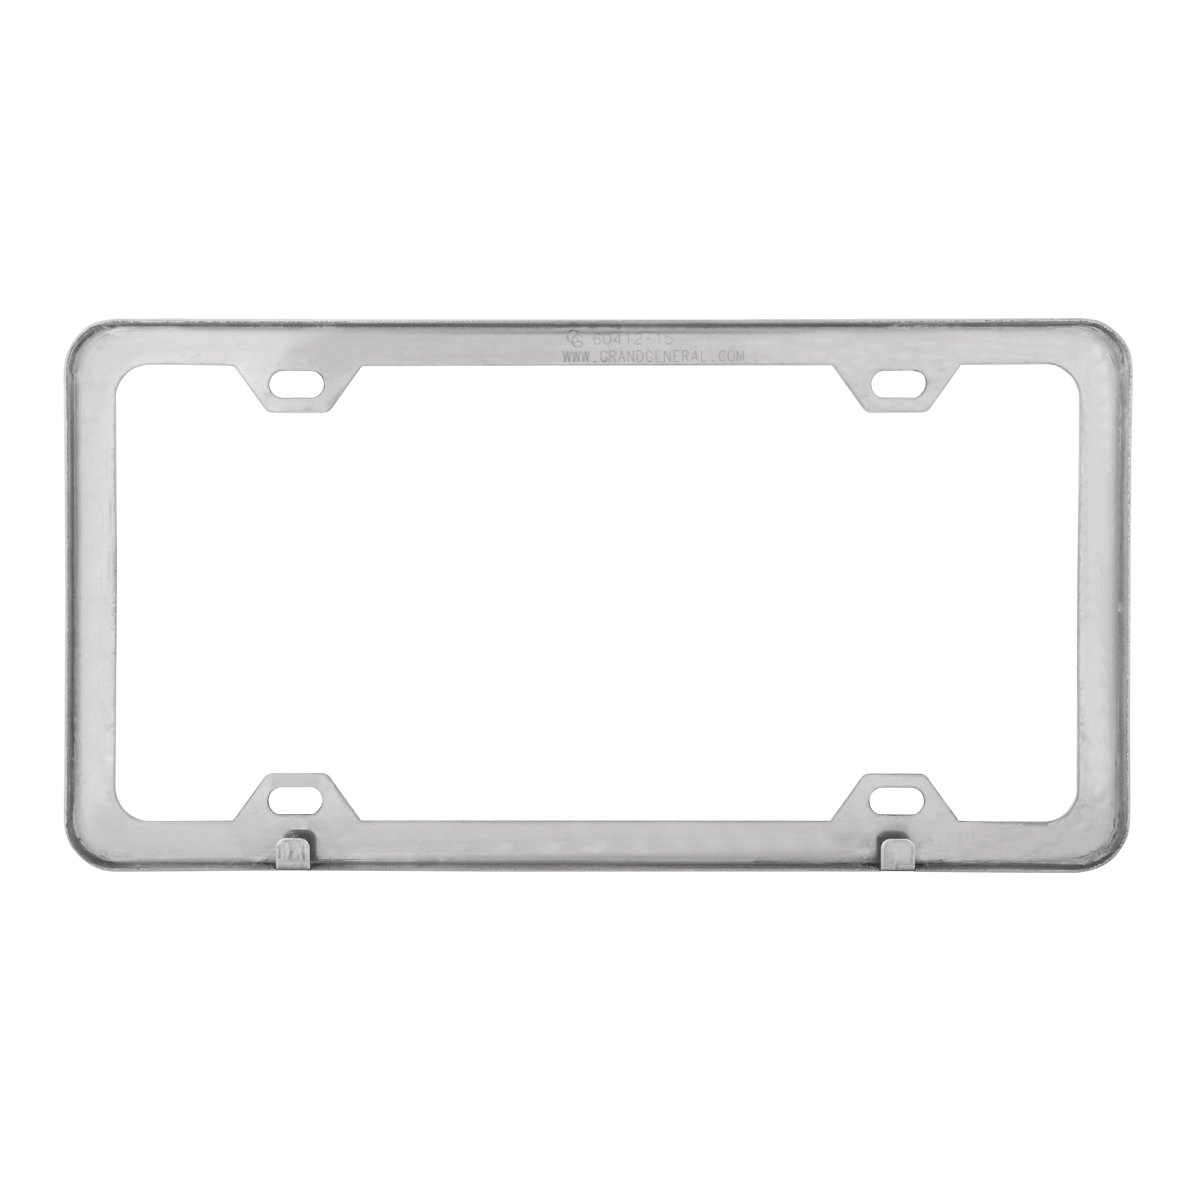 Grand General 60415 Black Semi-Gloss Powder Coated License Plate Frame with 4 Holes